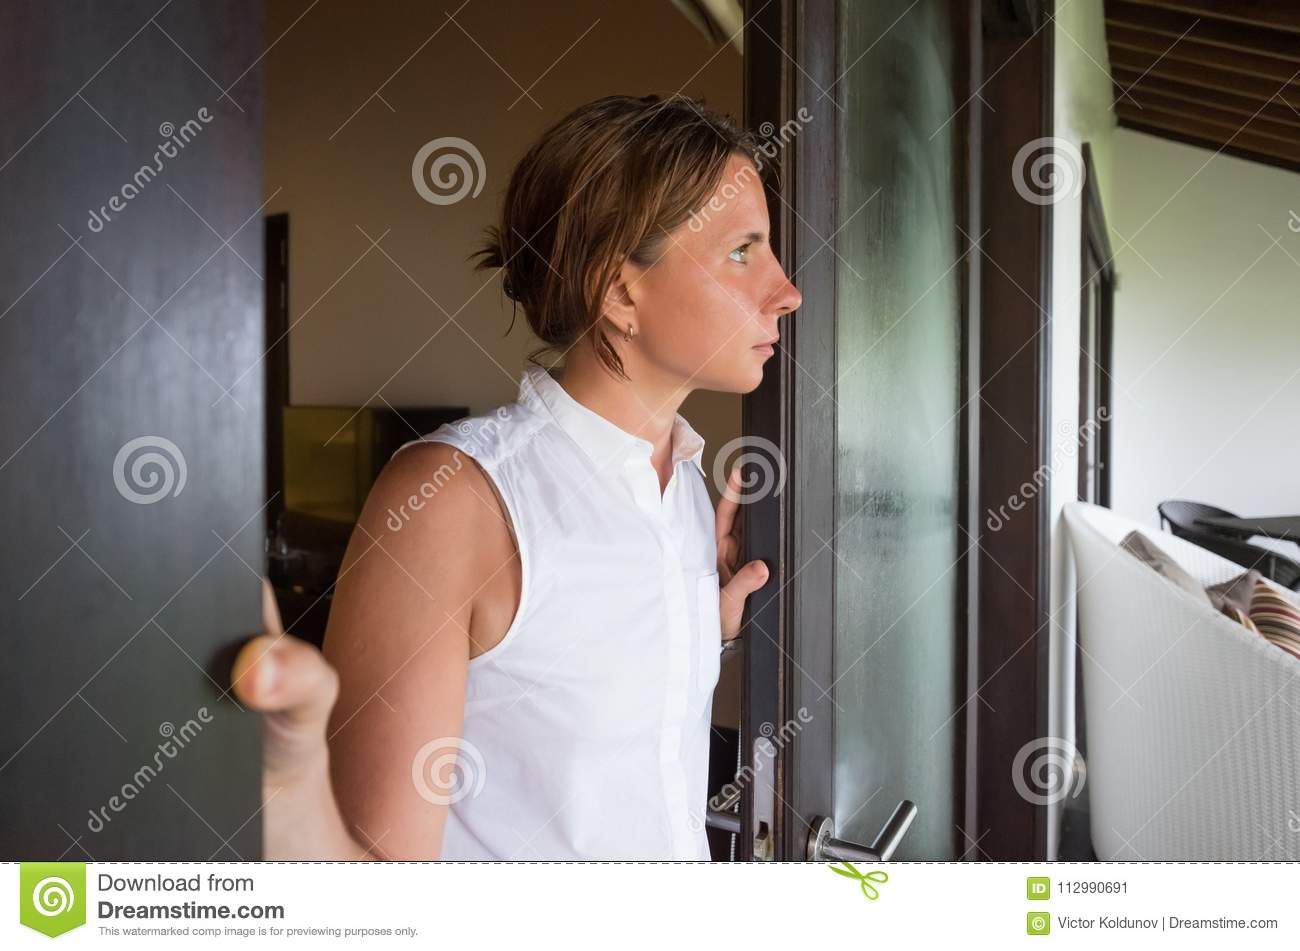 Young mature woman opening the window in the morning to breathe fresh air. She is alone and sad.